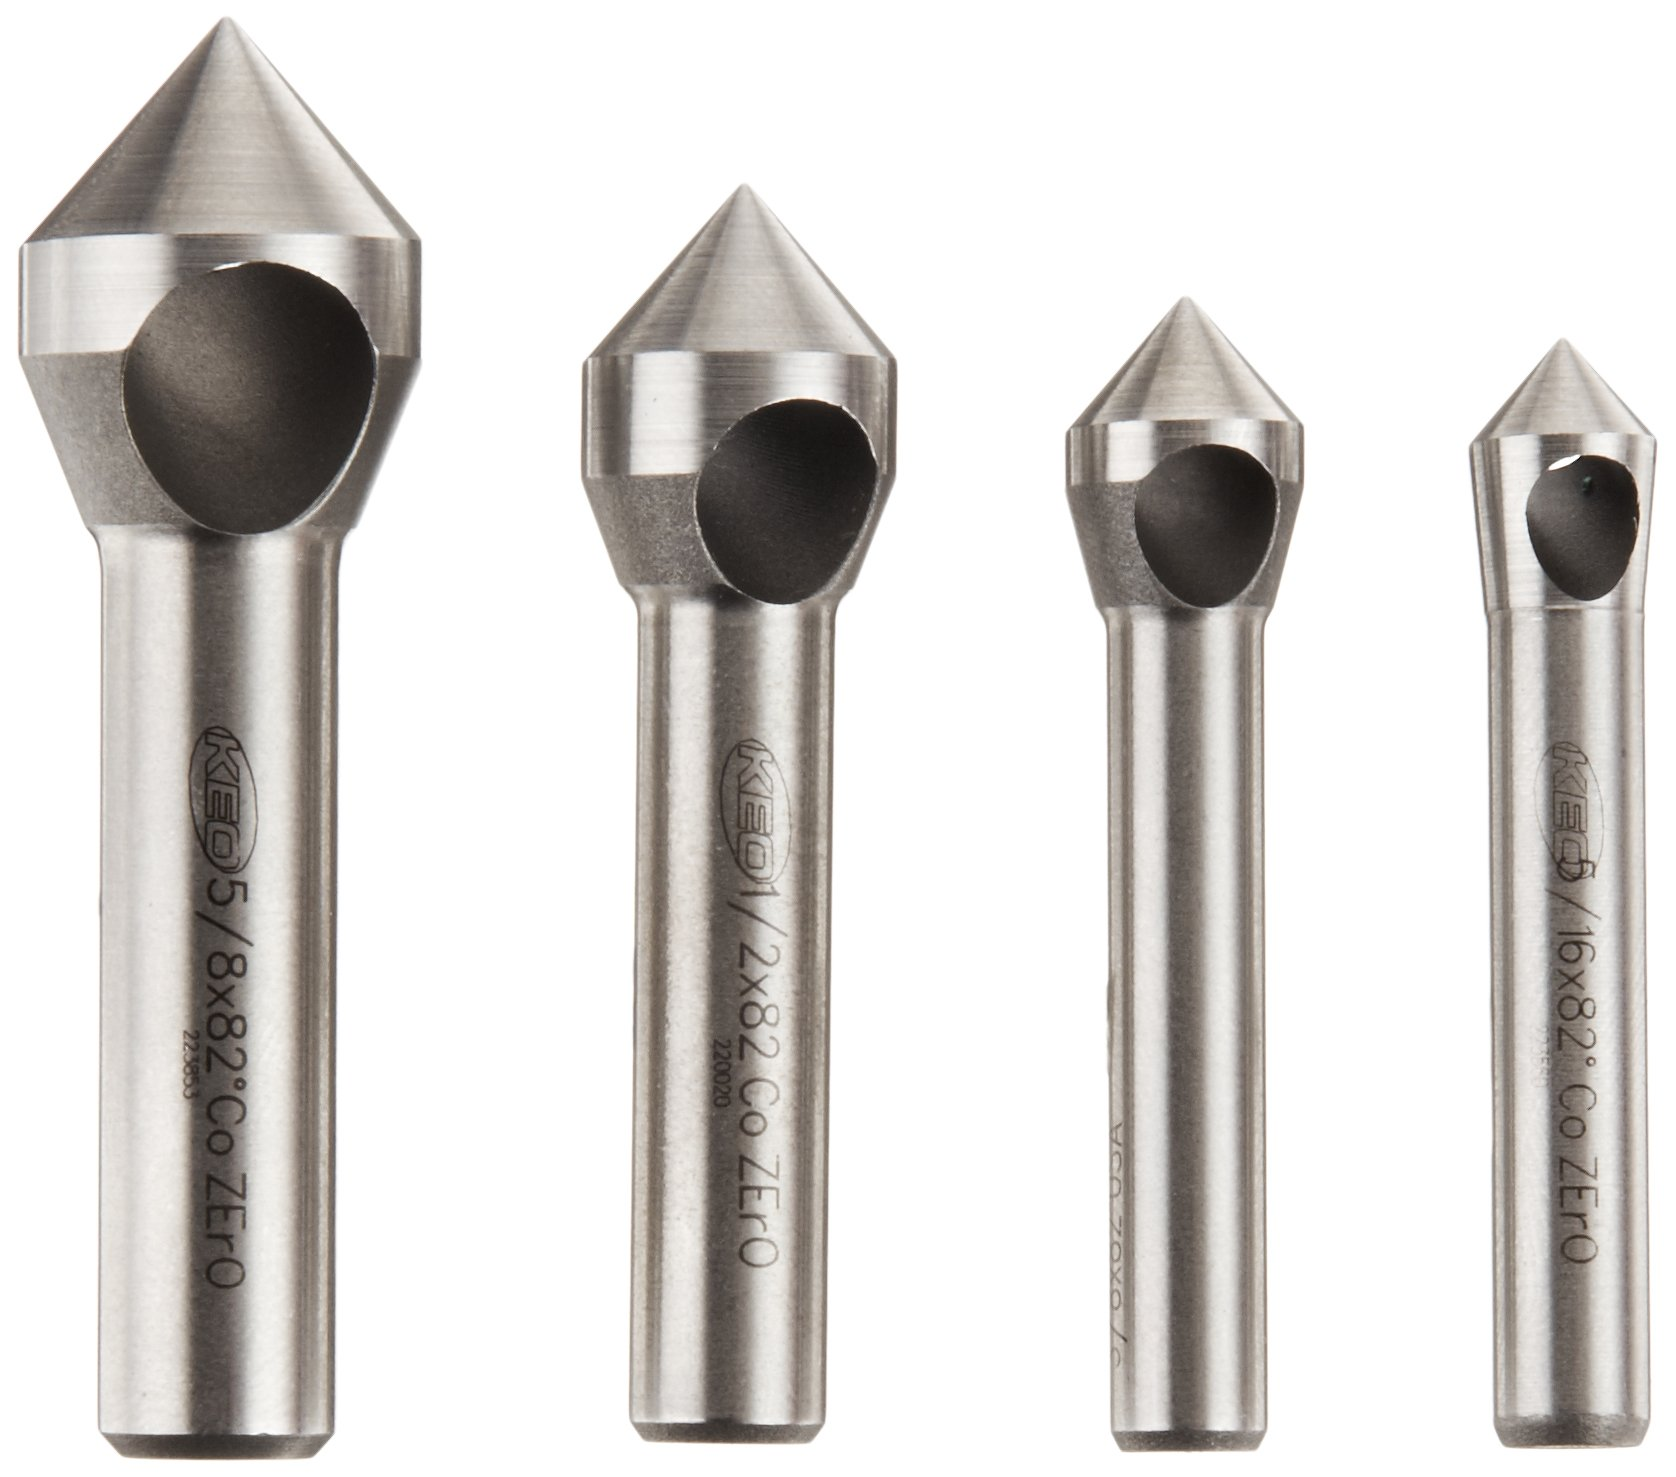 Double-Ended Plain Style Bright 0.125 Body Diameter 60 Degrees 0 Size Finish Magafor 1055 Series Cobalt Steel Combined Drill and Countersink Uncoated